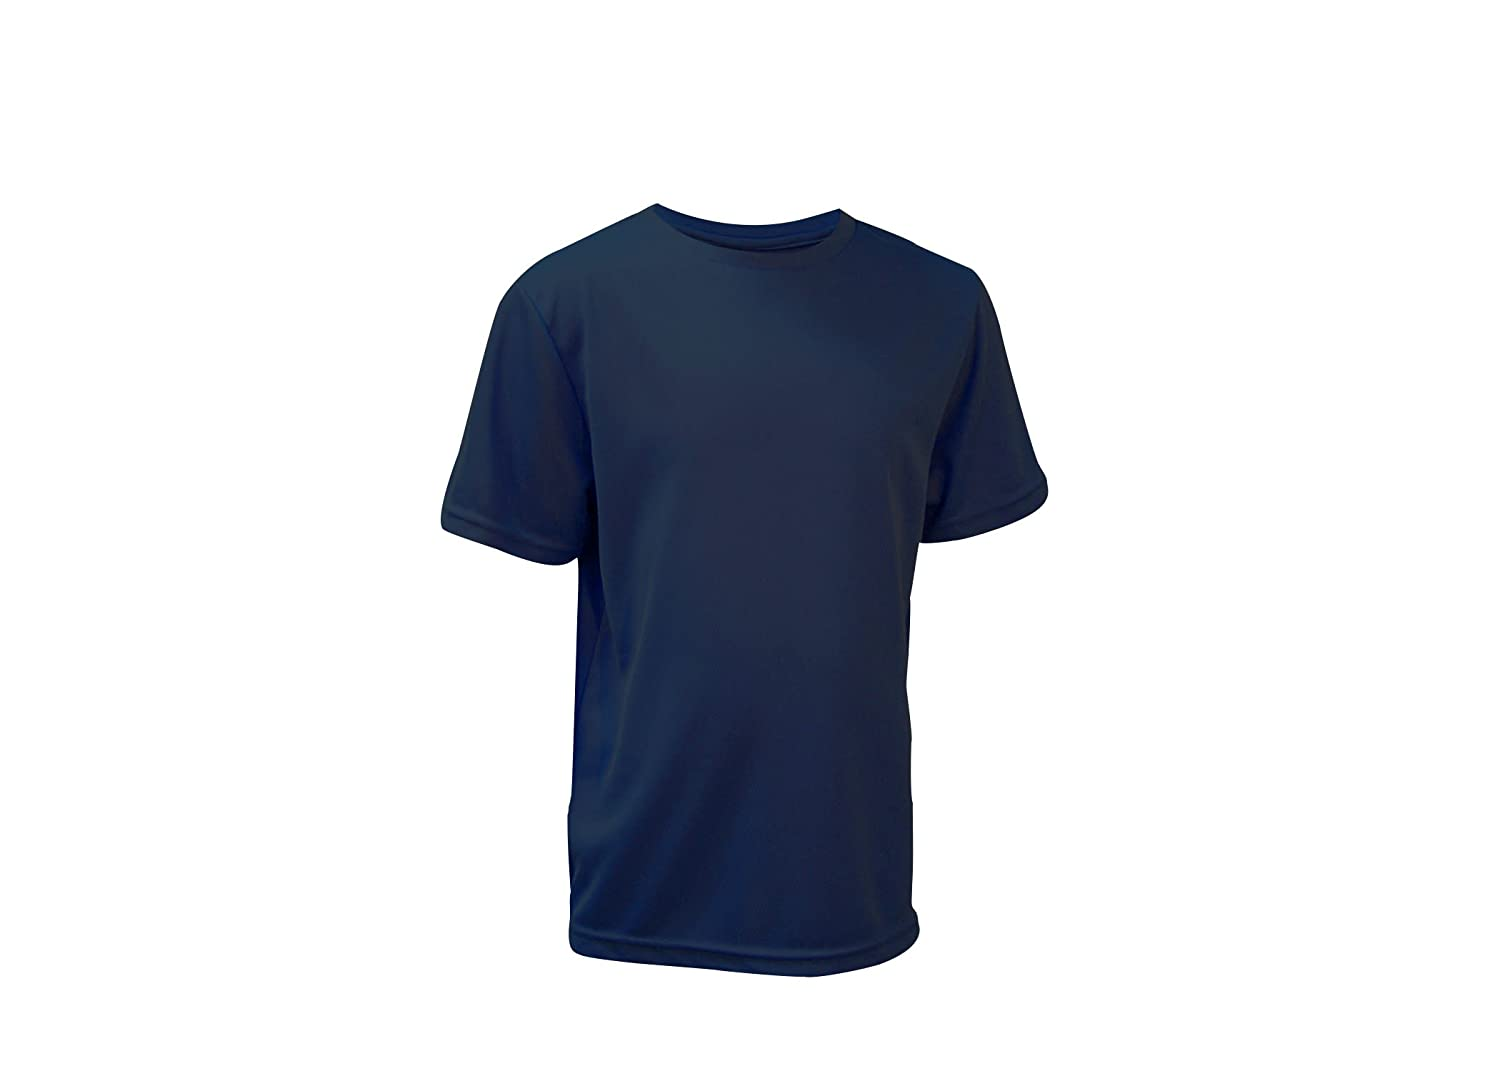 L2b Youth Athletic-Shirts, Crew Neck, Short Sleeve, Quick Dry, No Fade